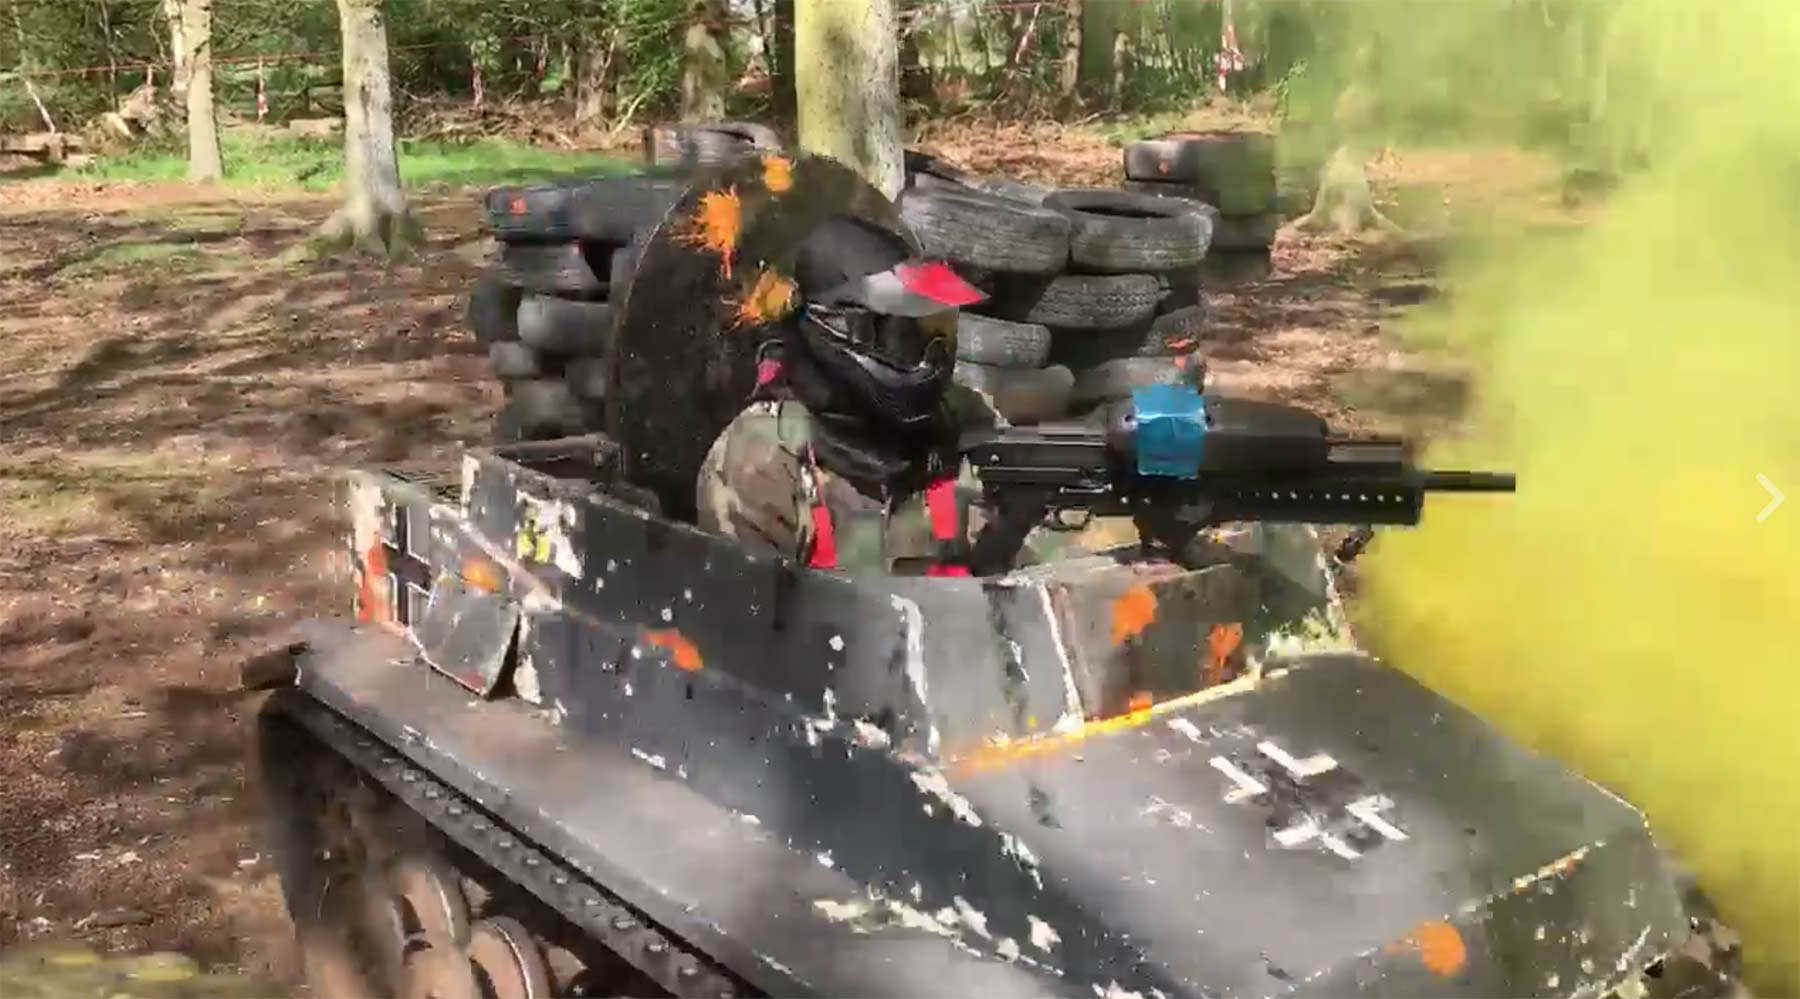 Minipanzer-Paintball